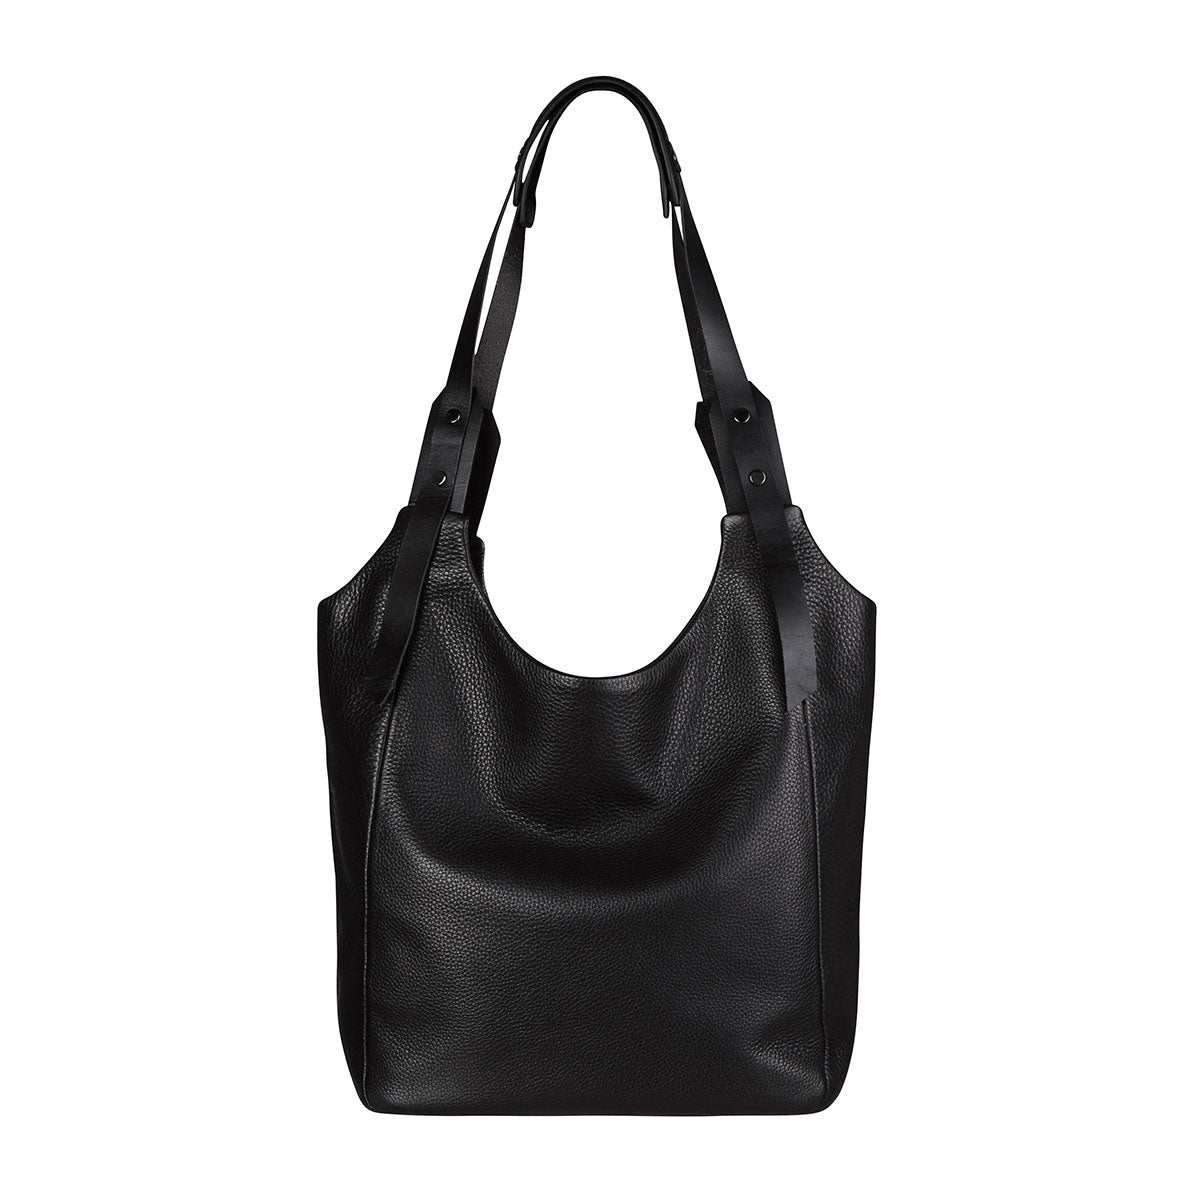 ... Status Anxiety Because The Night Leather Bag - Black ... 734fd4ffb4ec5